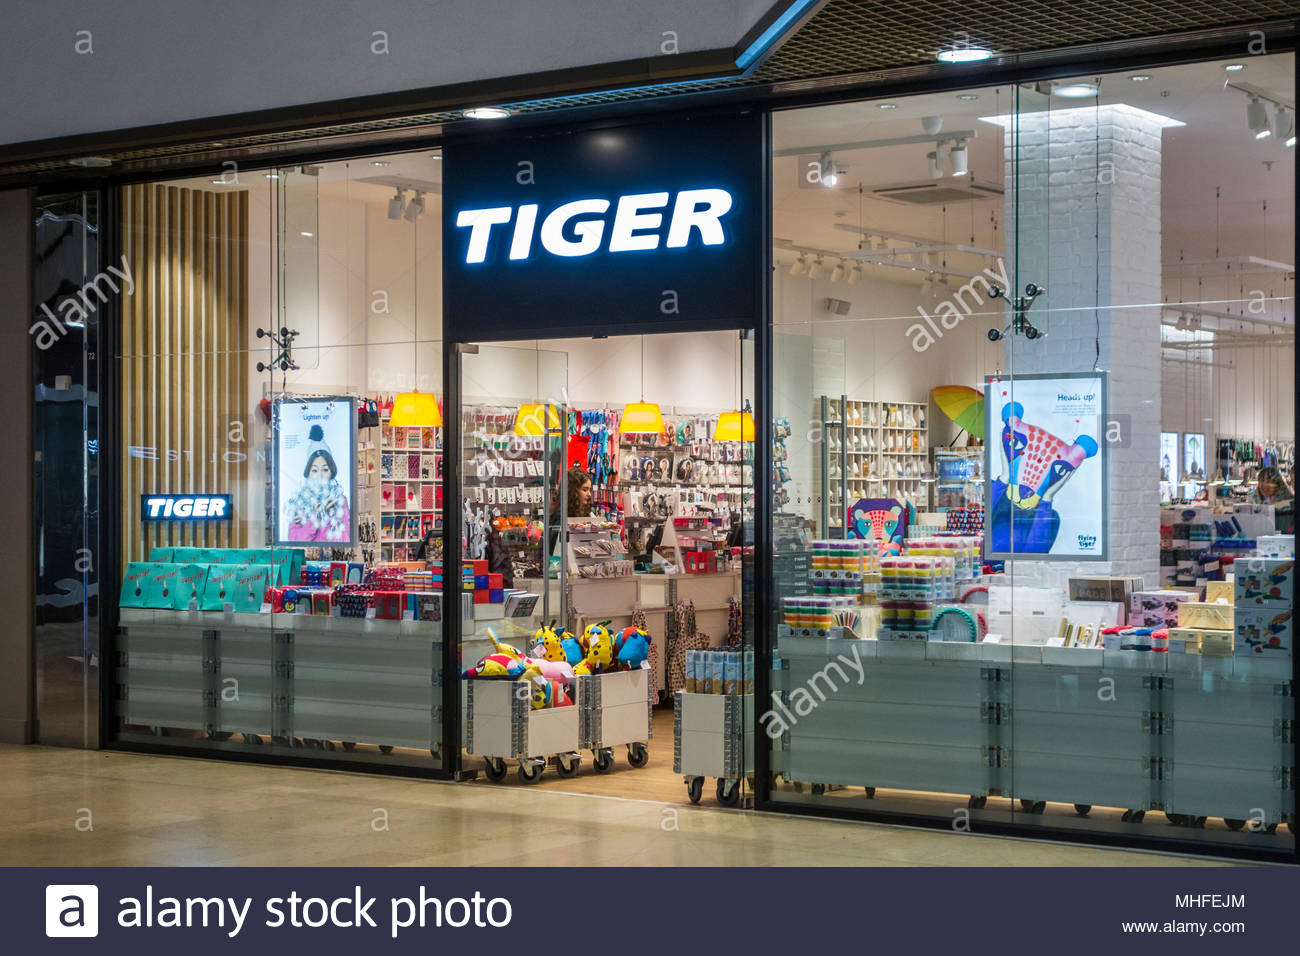 Tiger retail store in Queensgate Shopping Centre